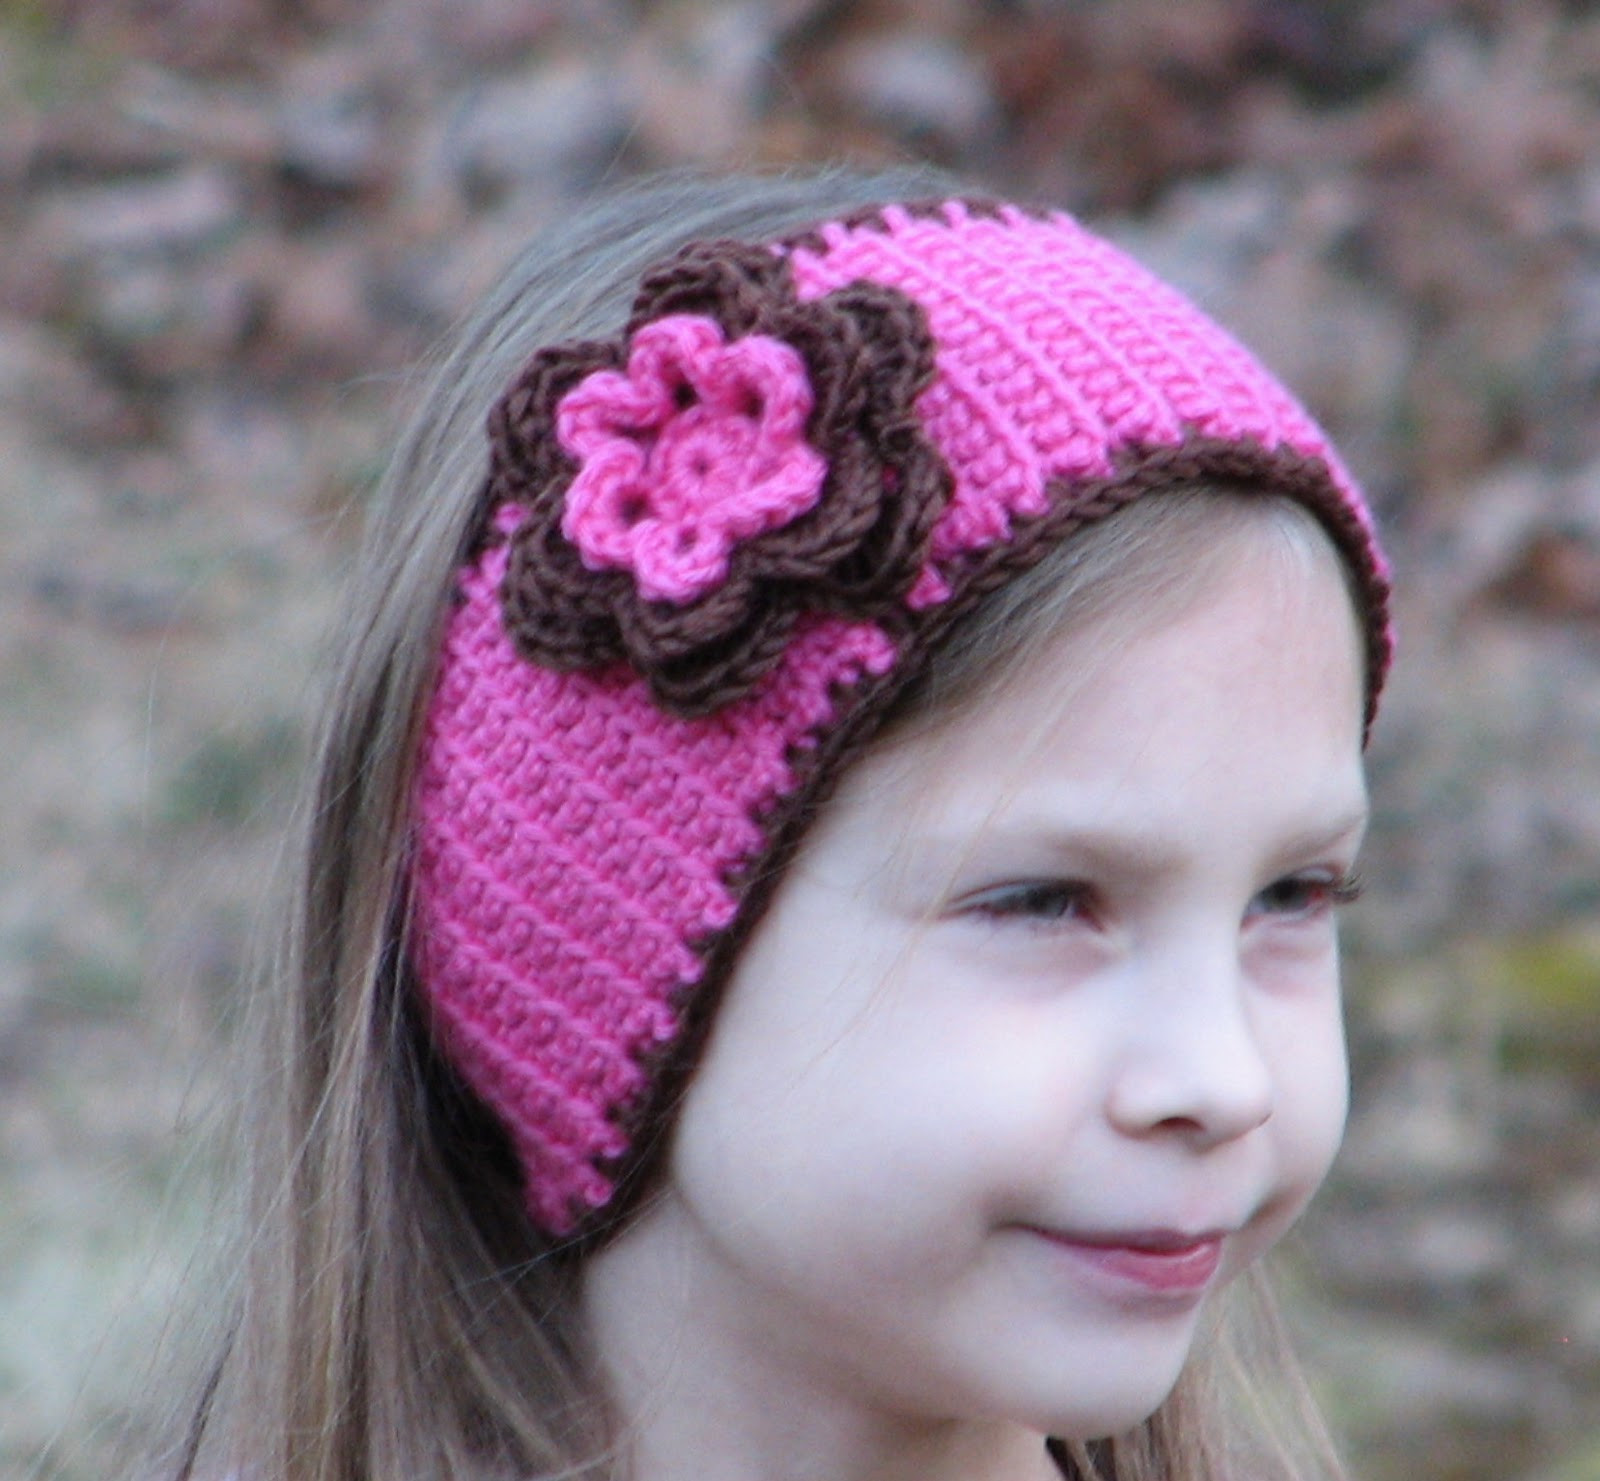 Luxury Girls Headwrap Crochet Pattern Ambassador Crochet Crochet for Girls Of Marvelous 40 Pics Crochet for Girls